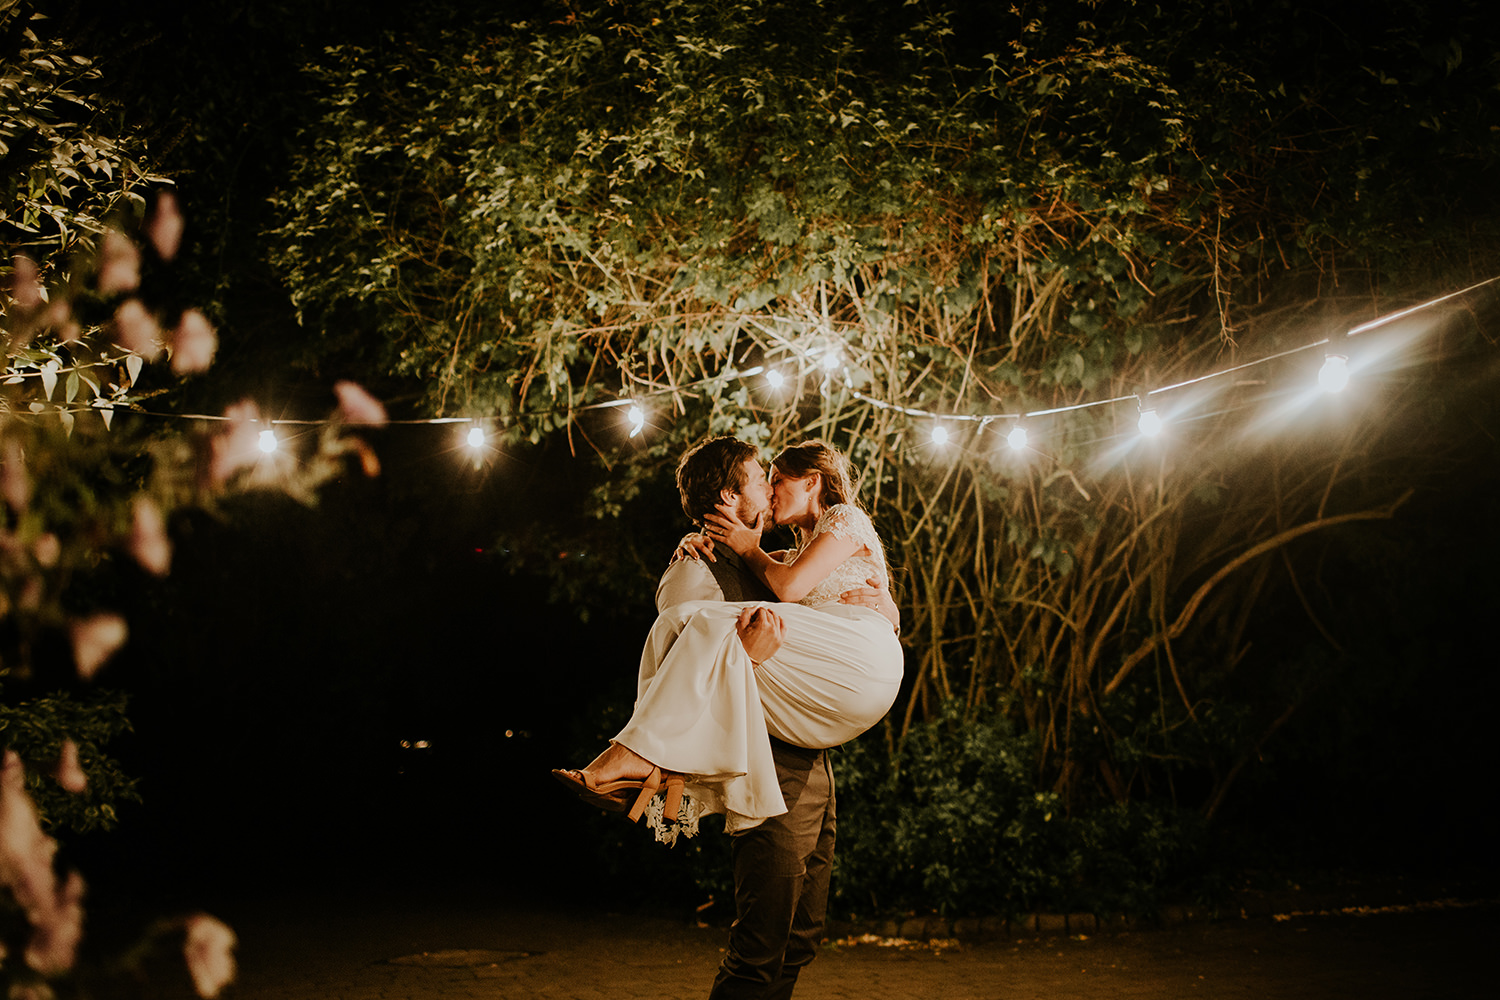 "Tara & Ben - ""Wow the photos came out amazing!! Thanks so so much for capturing all the magic with so many wonderful shots, looking at them literally transported us back to that amazing day and it's so nice seeing all the action and fun people had! Thanks again for everything, you're such a joy to work with and your great work speaks for itself."""